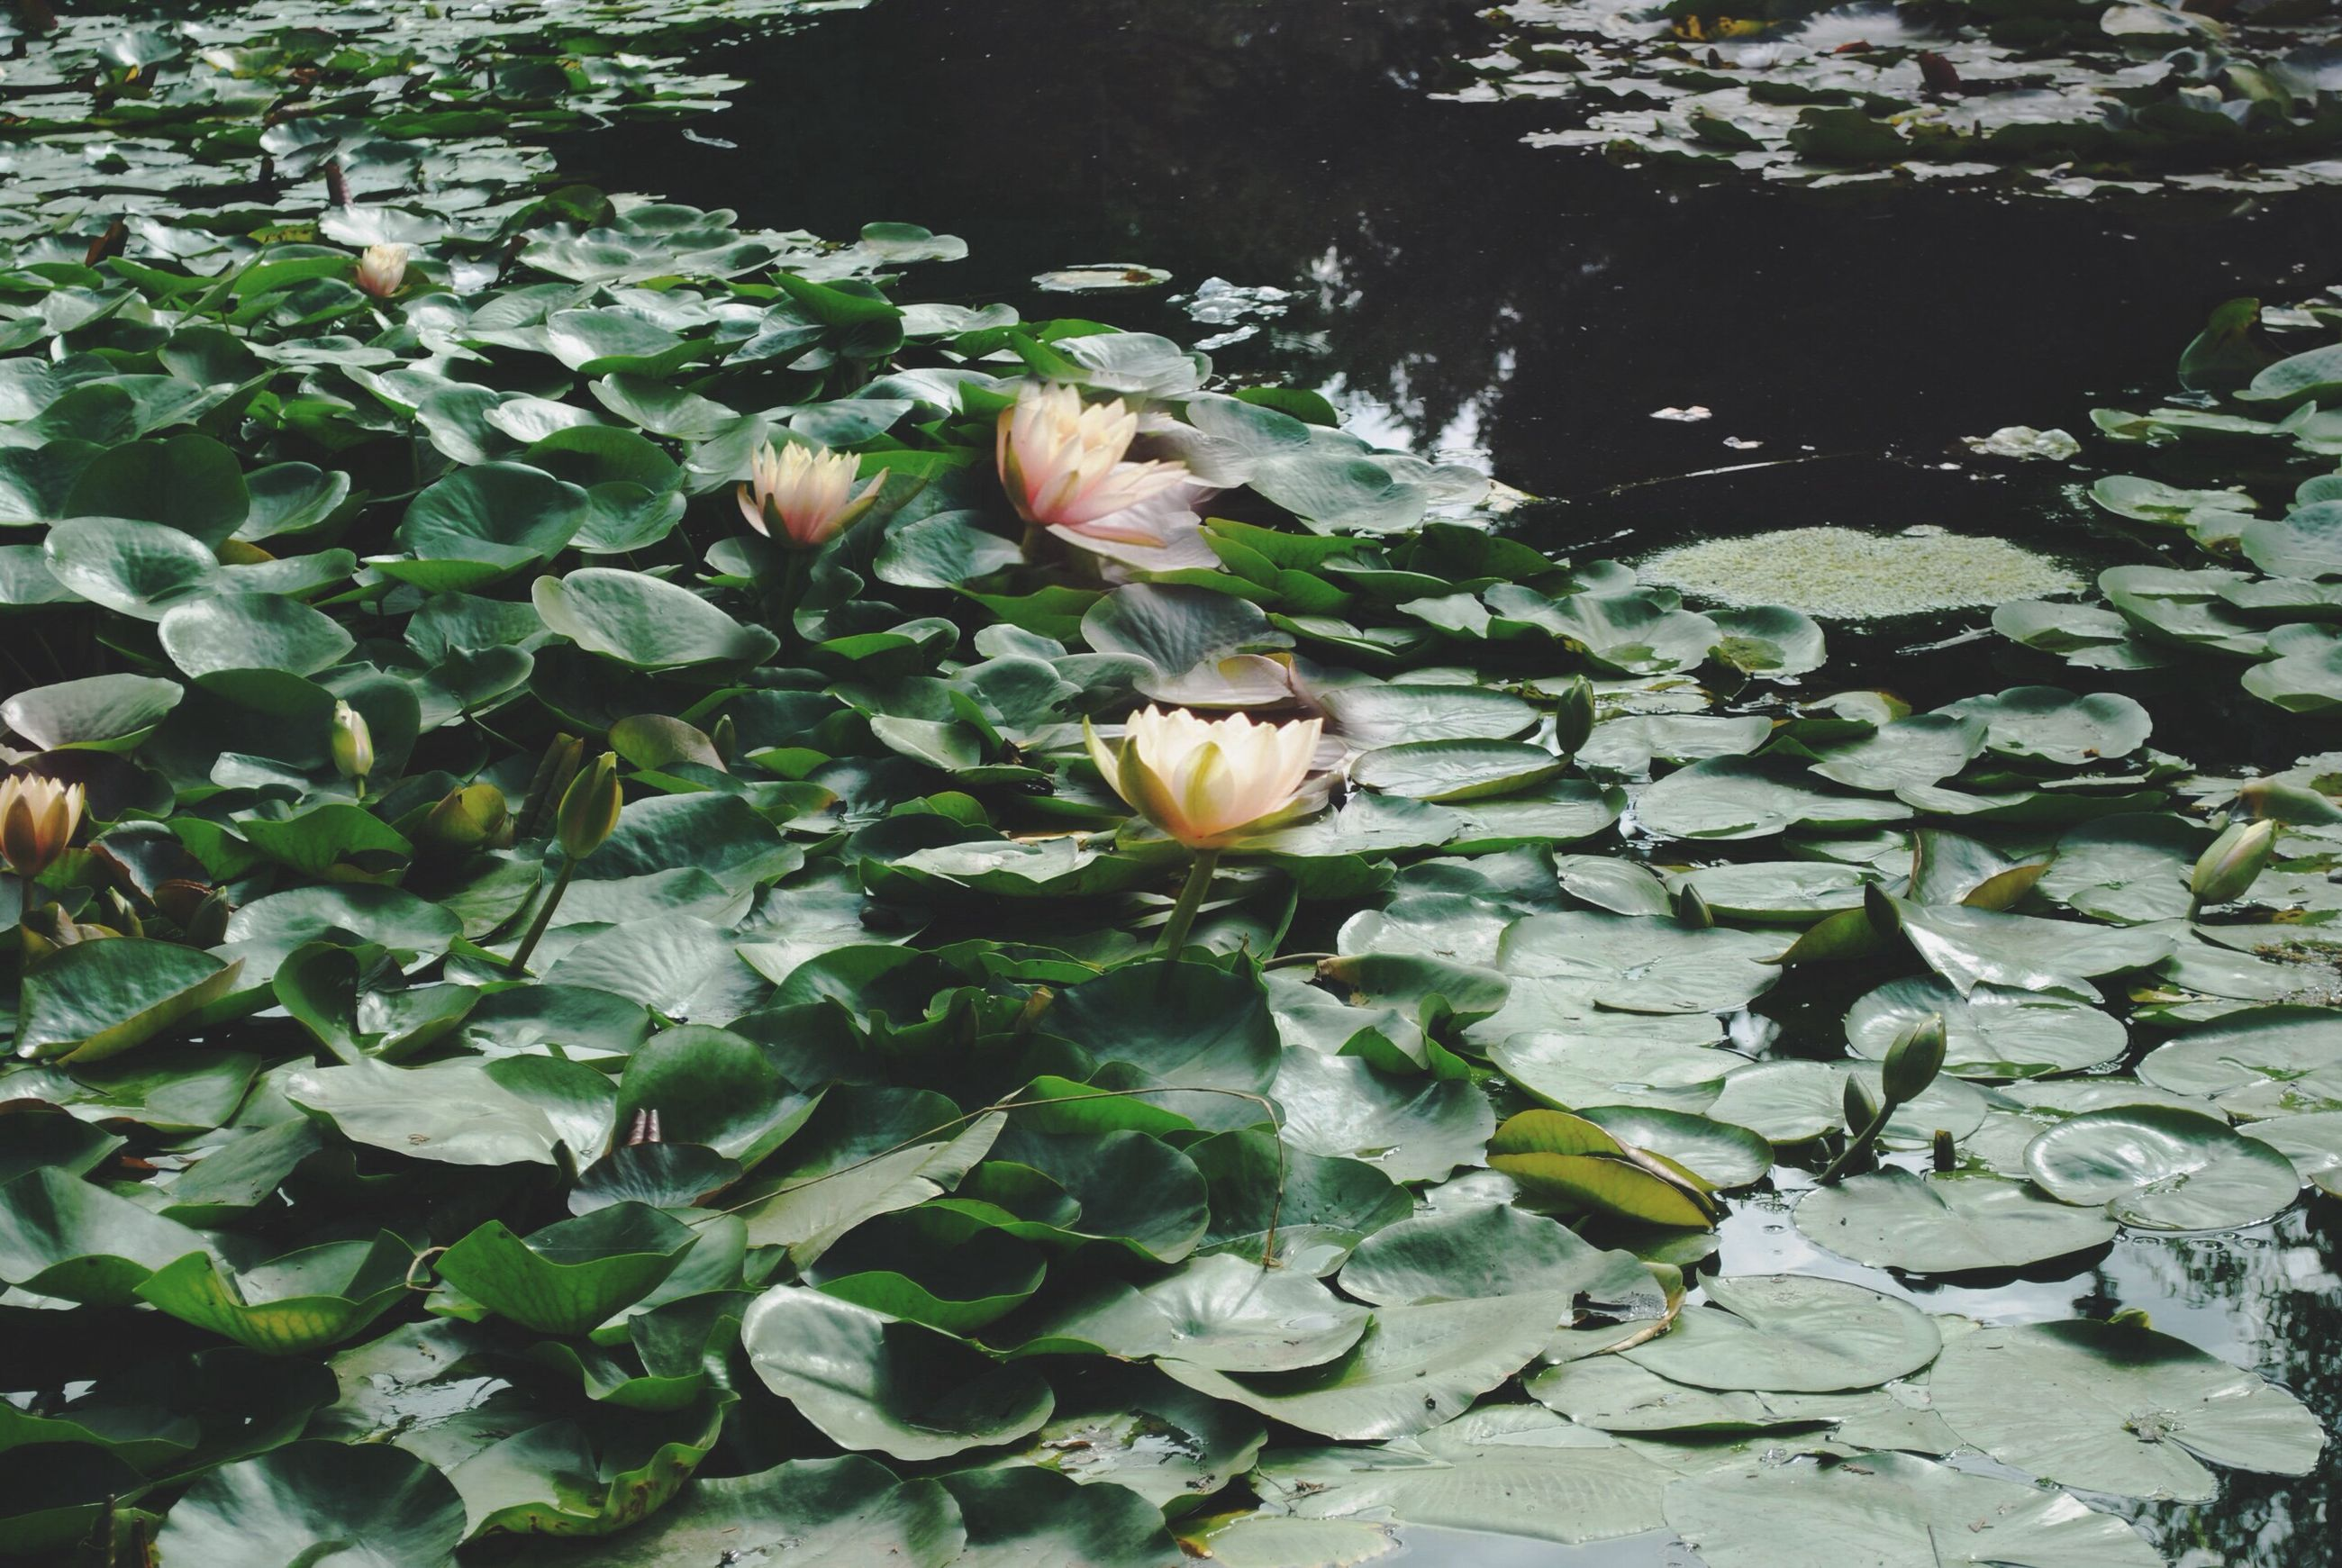 flower, beauty in nature, fragility, nature, leaf, freshness, growth, plant, petal, high angle view, flower head, lotus water lily, outdoors, floating on water, no people, green color, blooming, water, lily pad, day, close-up